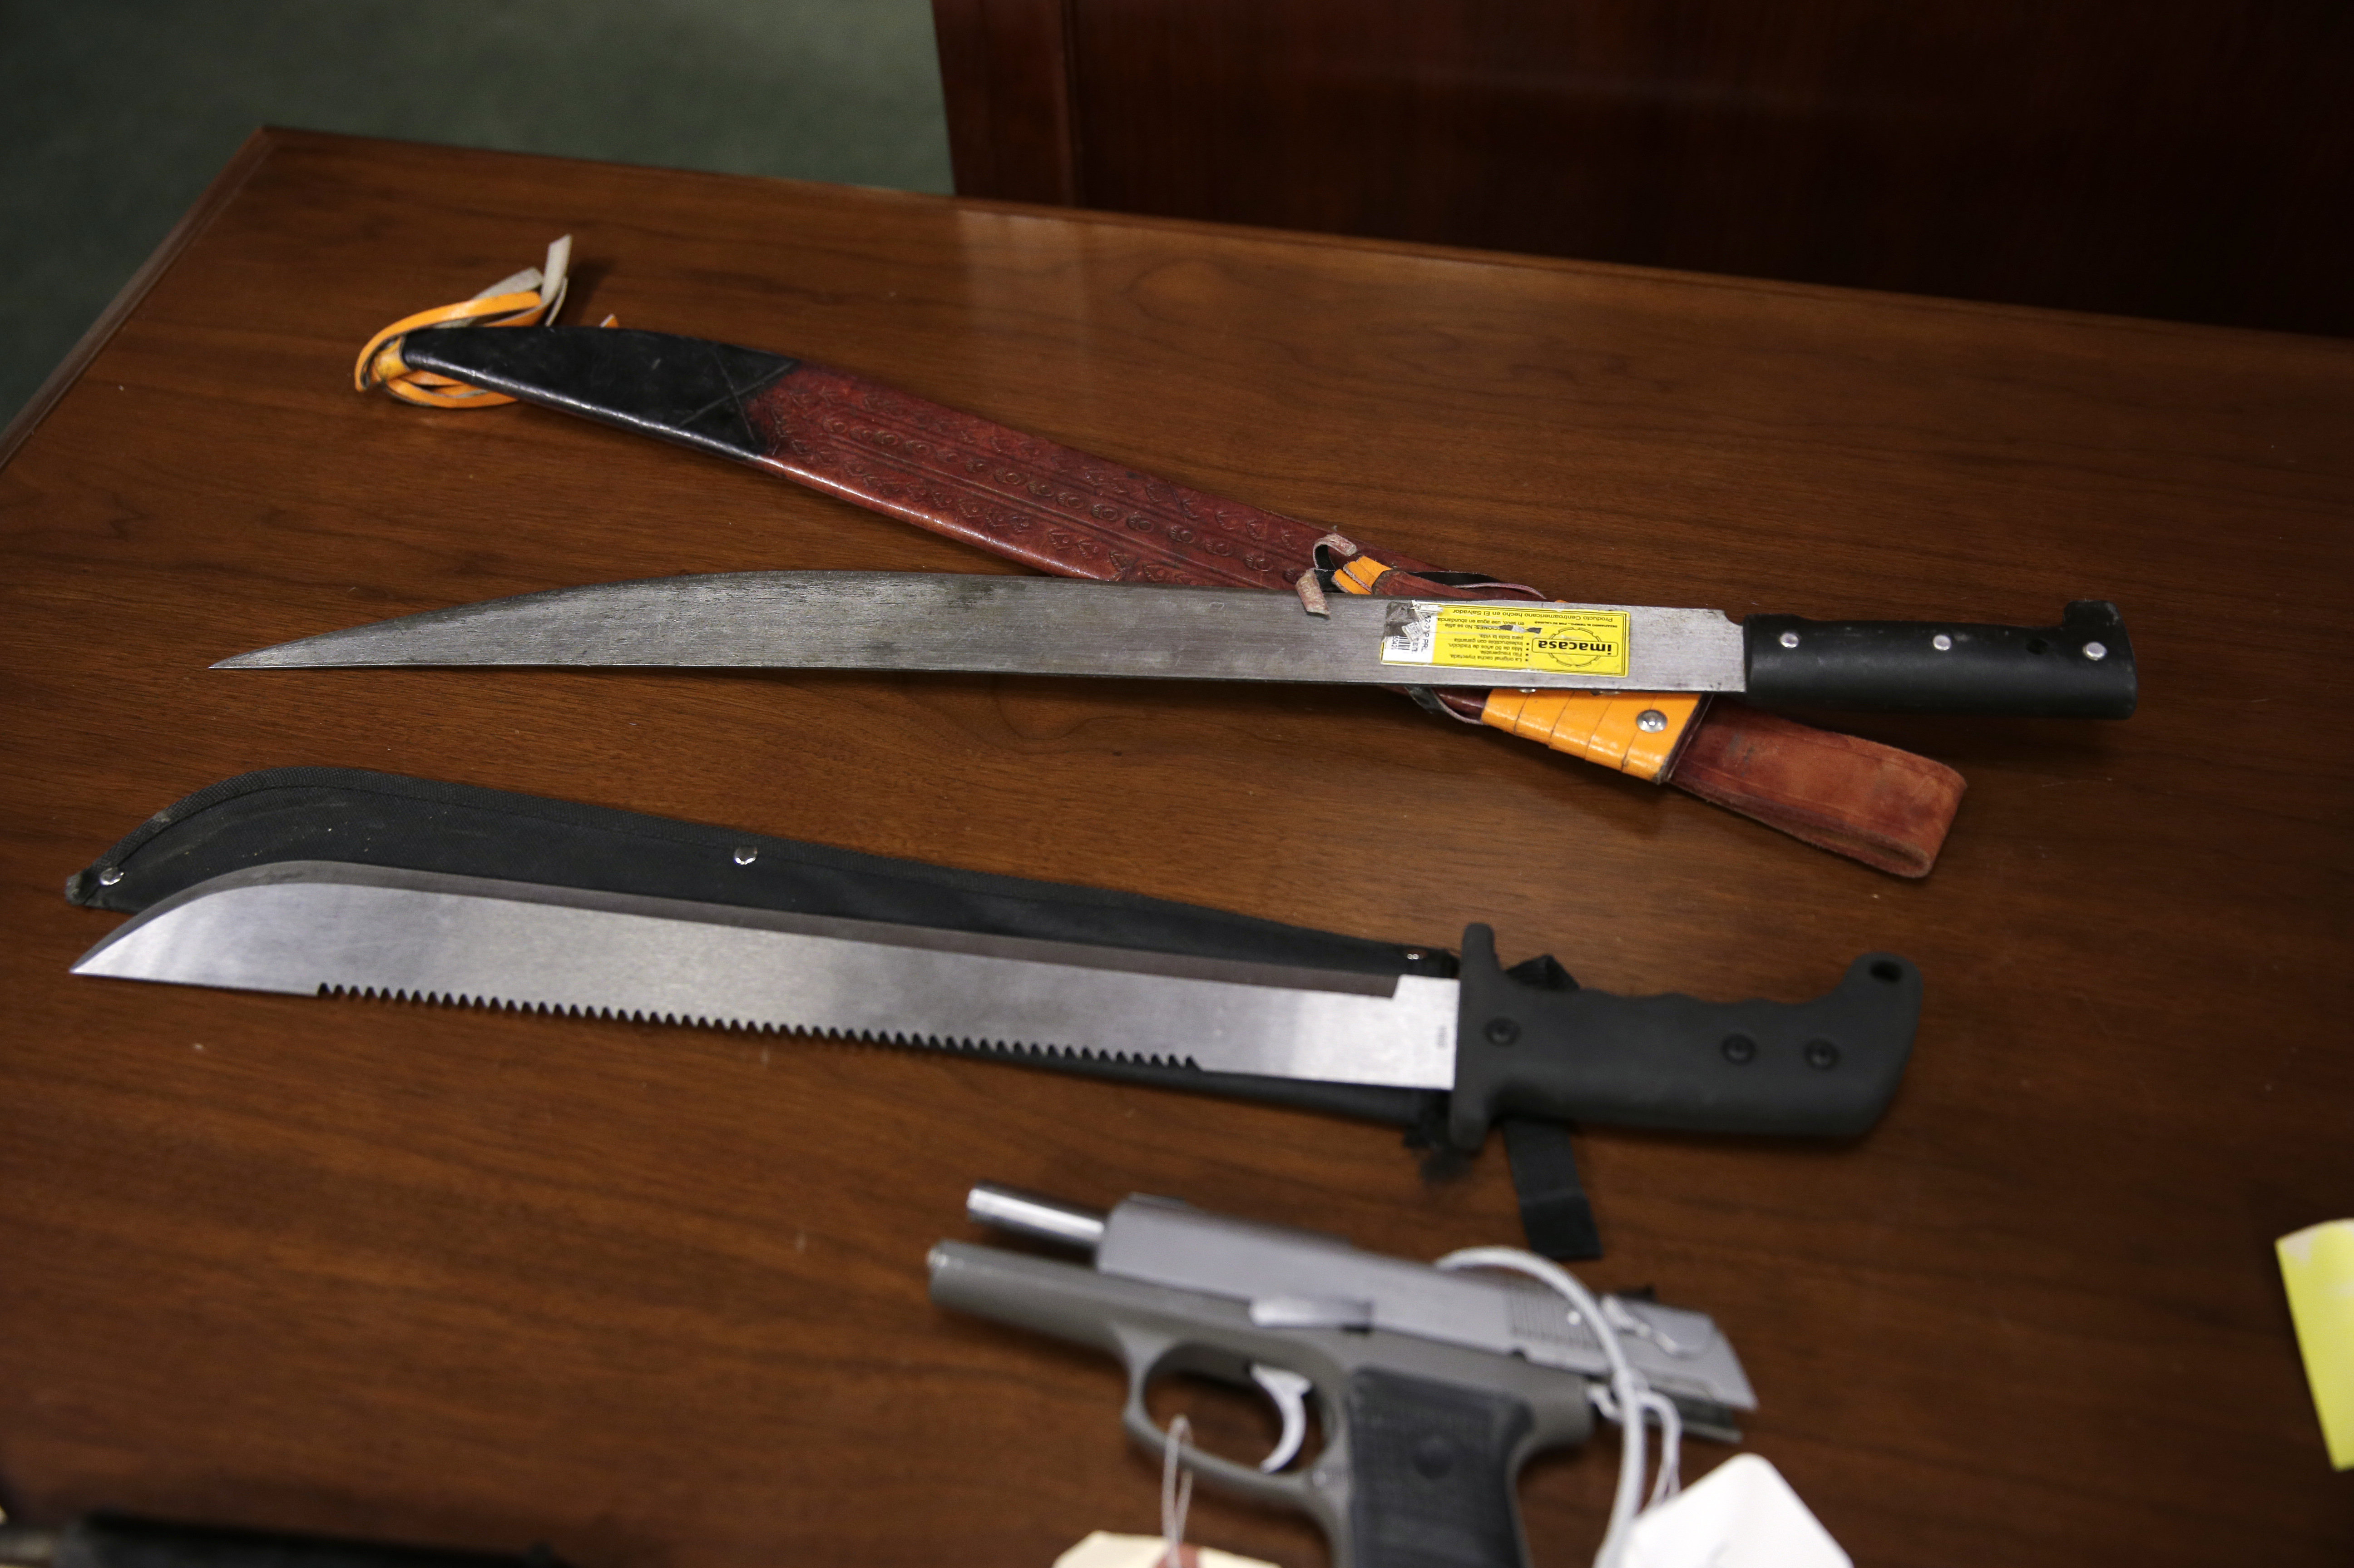 Weapons on display at the U.S. Attorney's office following the arrests of gang members in Boston, Friday, Jan. 29, 2016. Authorities say they have charged 56 members of the MS-13 gang in and around Boston. The gang is notoriously violent and known for using machetes to kill victims. According to court documents, in 2012, MS-13 became the first and remains the only street gang to be designated by the U.S. government as a transnational criminal organization.